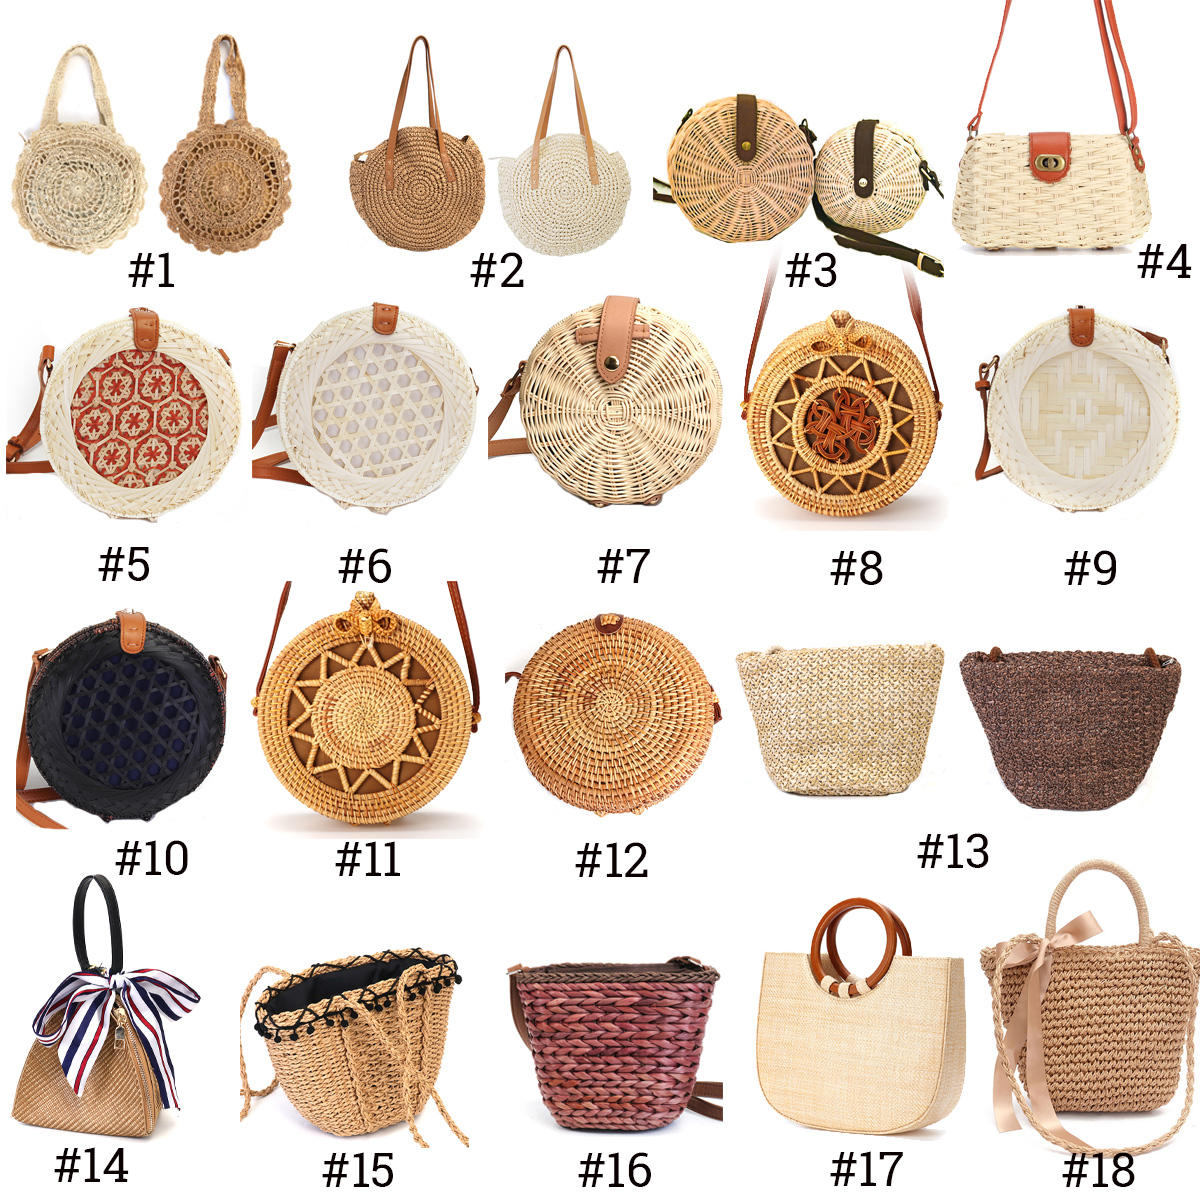 2020 Women Vintage Beach Straw Bag Ladies Handmade Woven Rattan Messenger Handbag Summer Bali Bohemian Crossbody Shoulder Bag